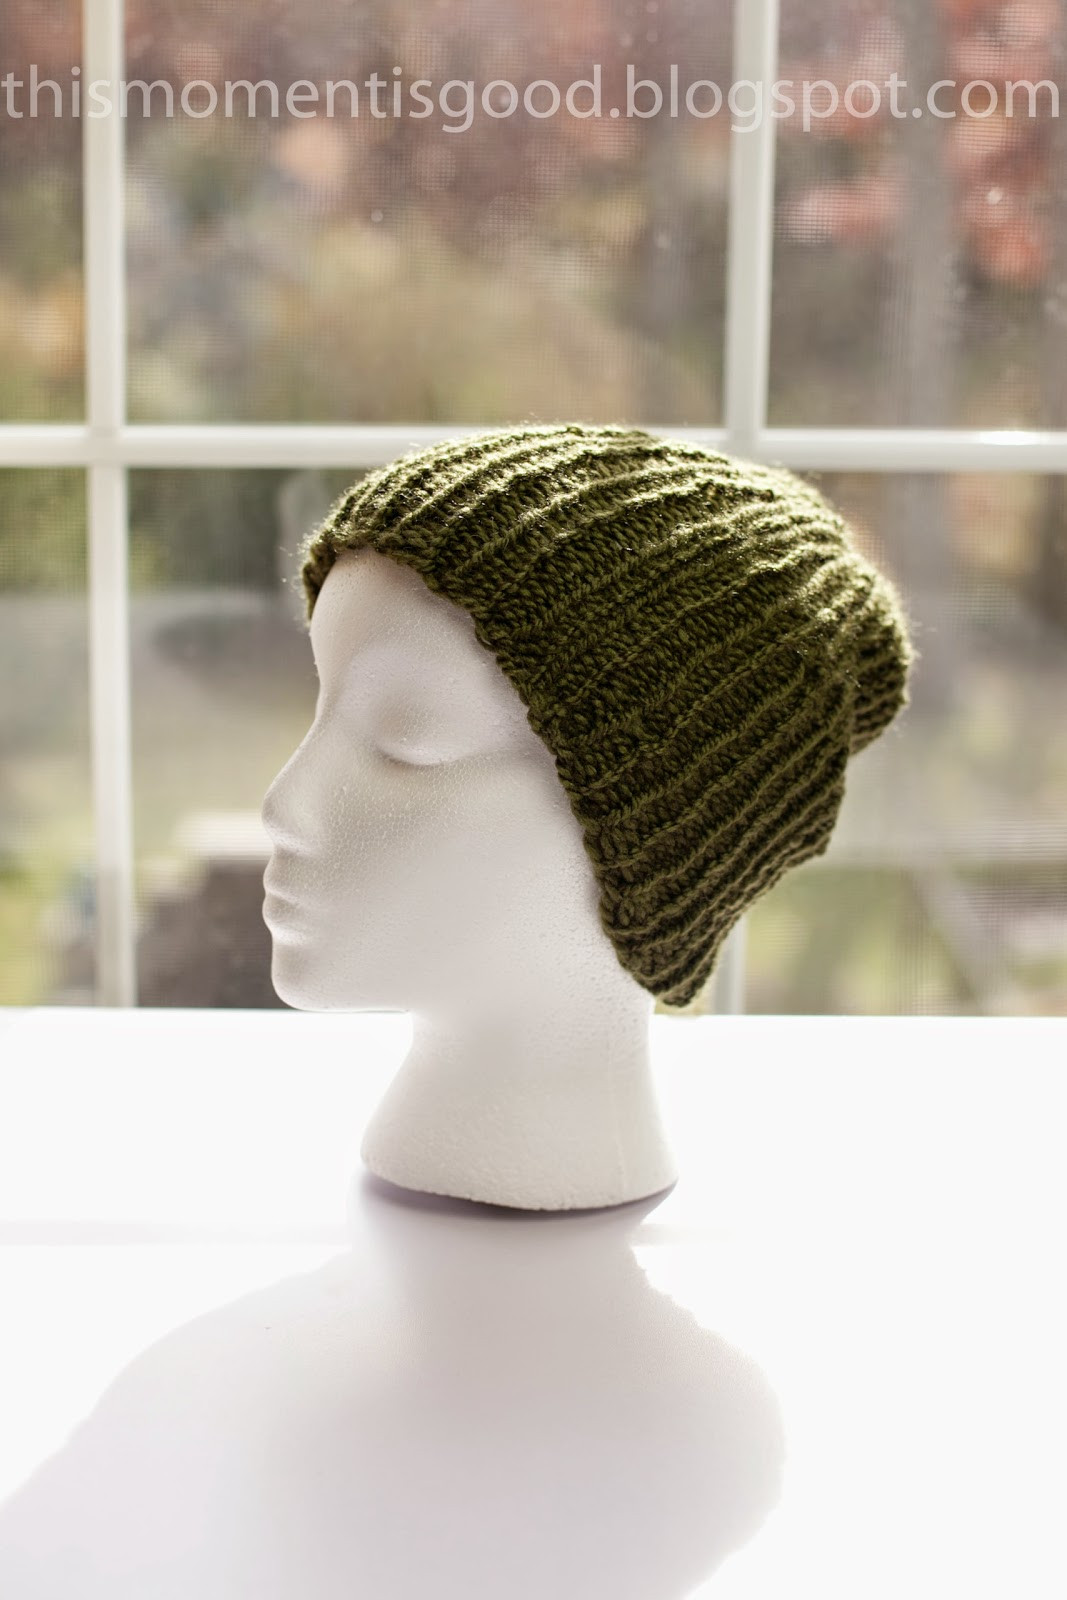 Hat Loom Fresh Loom Knit Men S Ribbed Beanie Of Amazing 48 Pictures Hat Loom